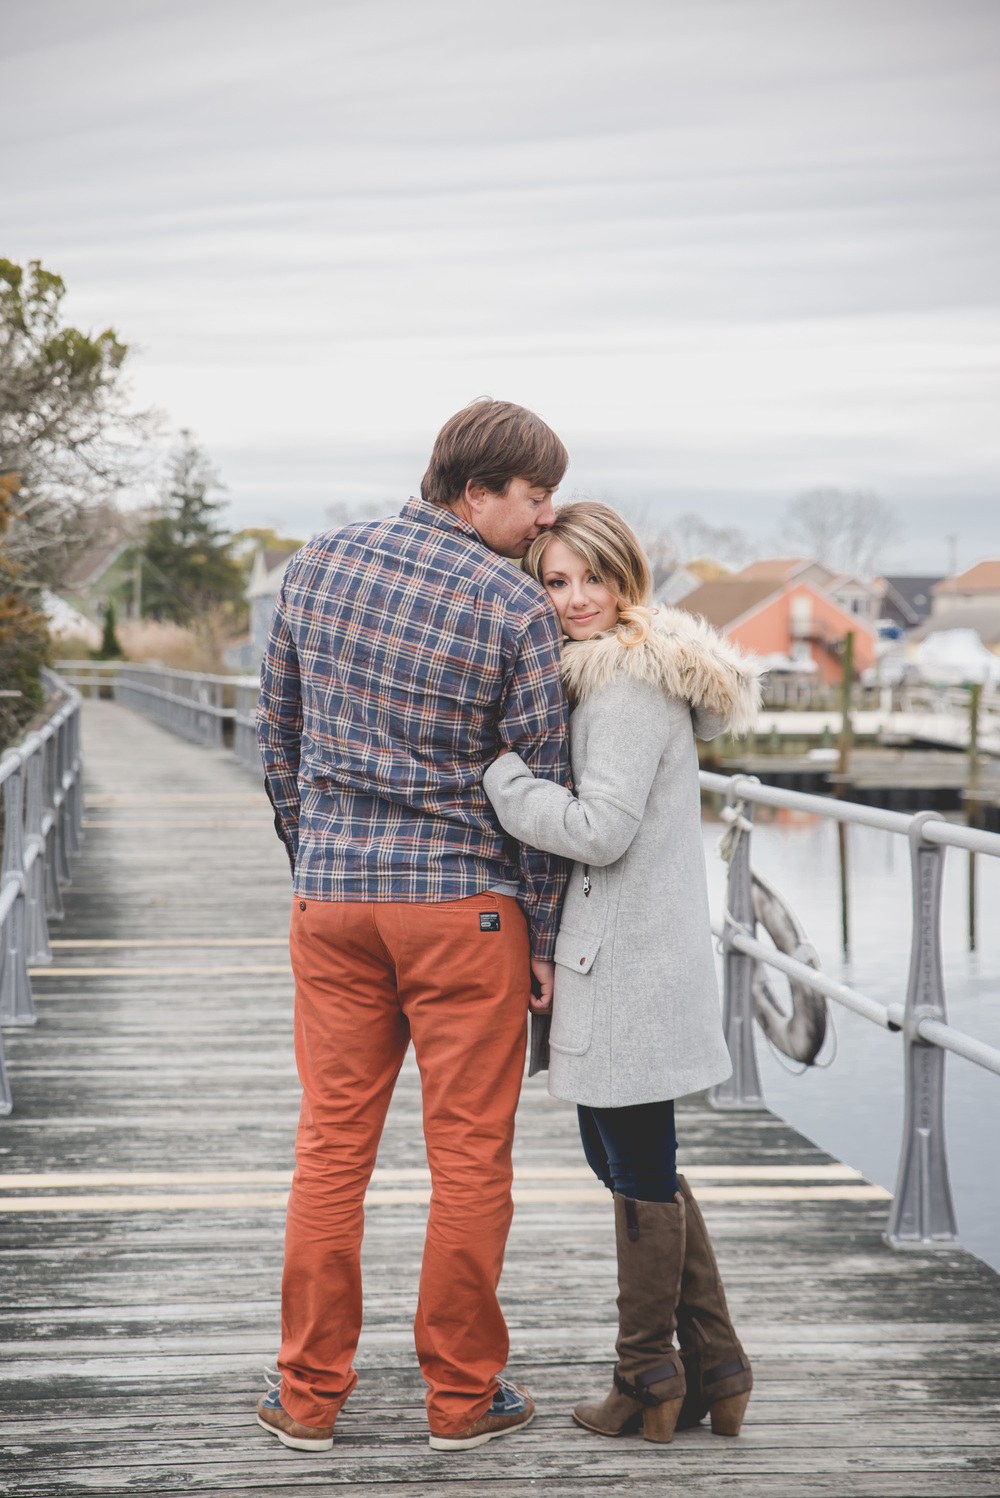 NJ Engagement Photographer Pricing